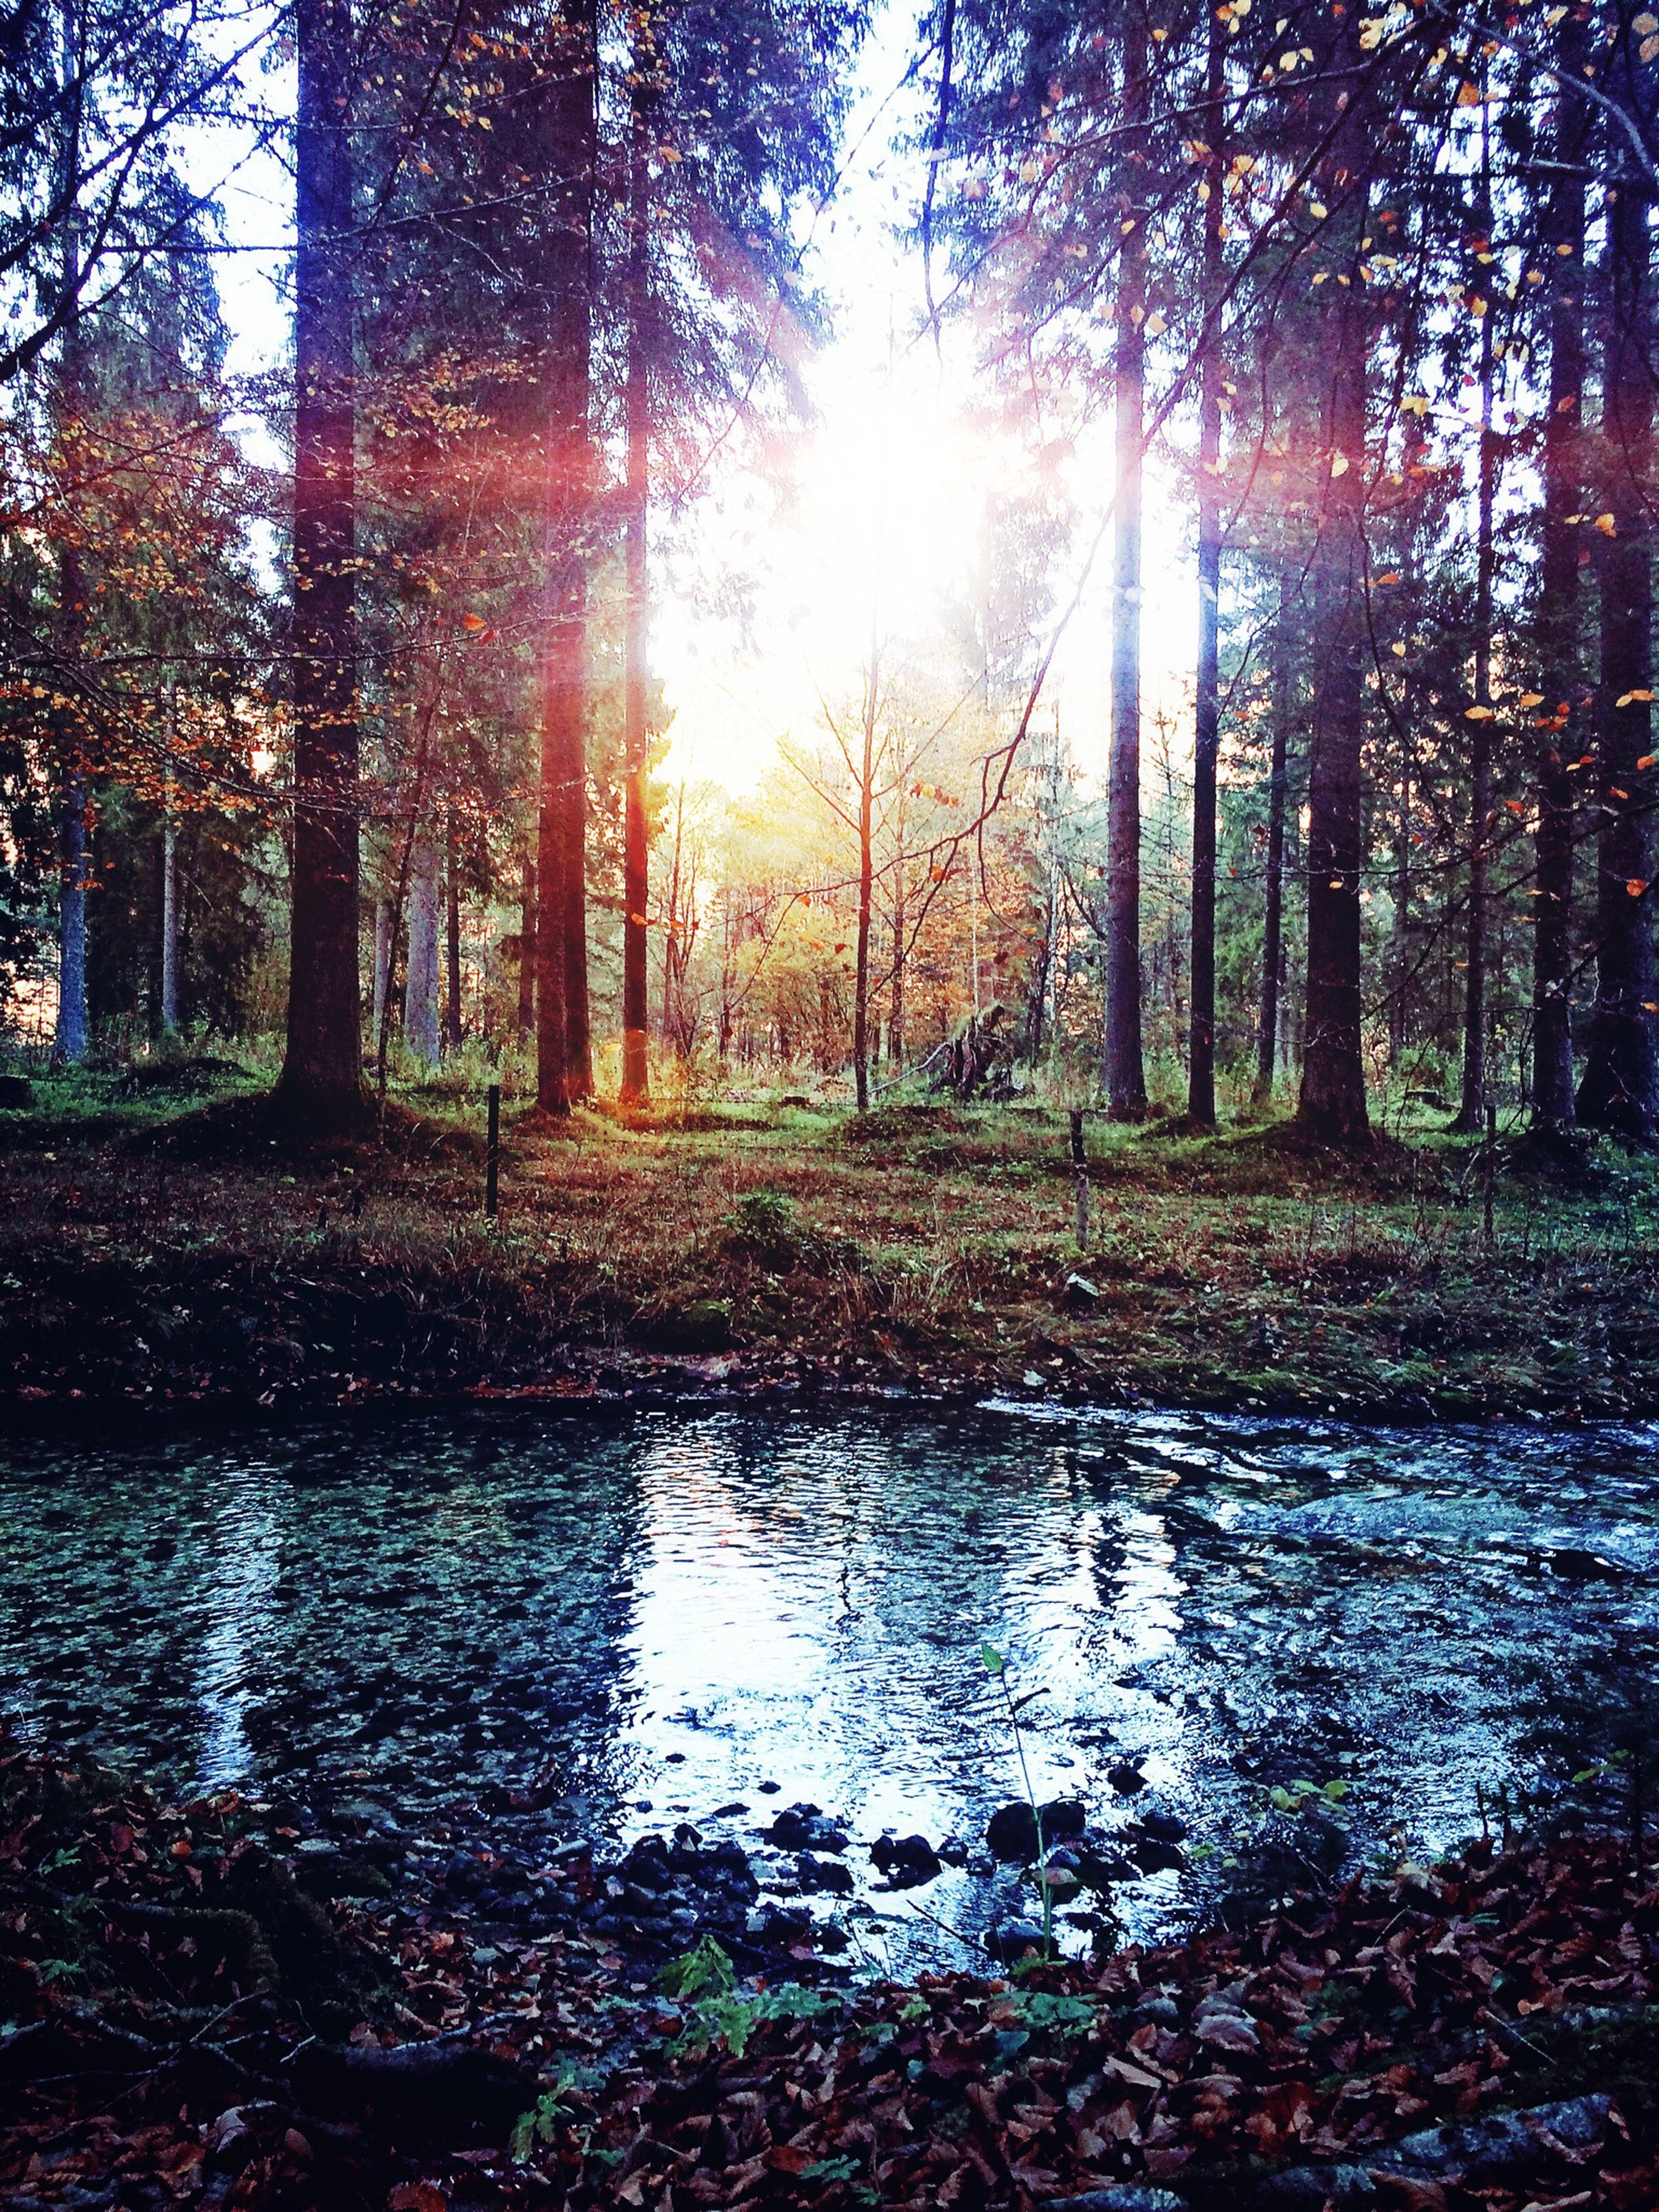 tree, tranquility, forest, tranquil scene, beauty in nature, scenics, nature, water, sunlight, sun, woodland, sunbeam, reflection, growth, tree trunk, non-urban scene, idyllic, lens flare, stream, no people